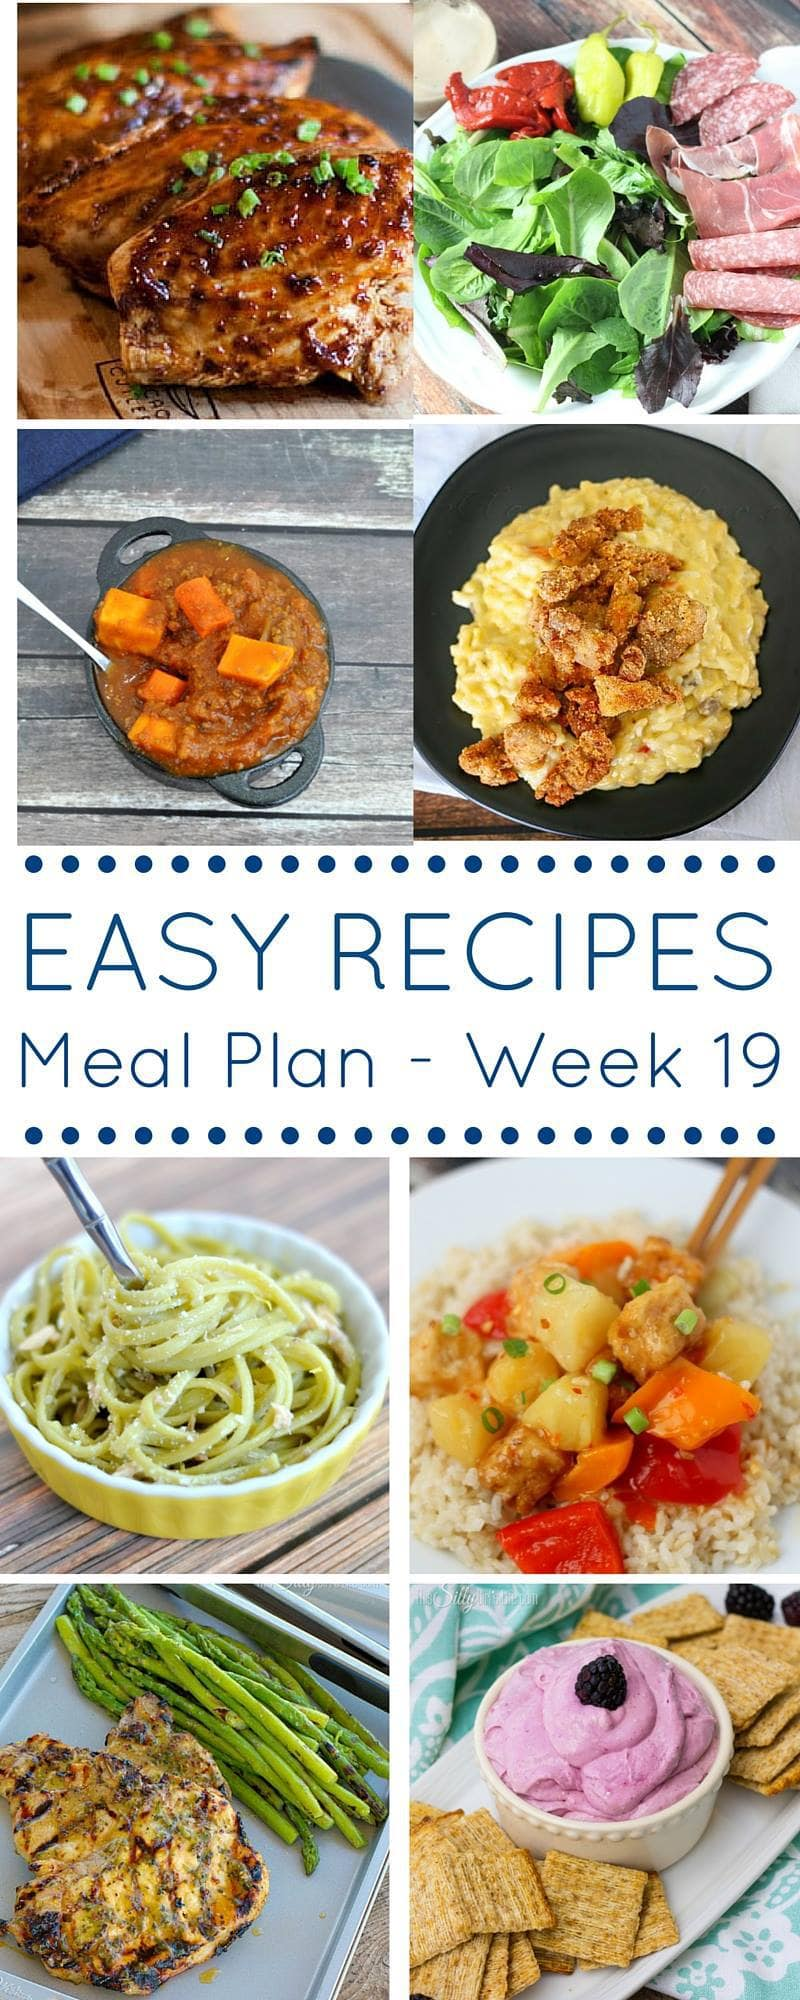 Recipes and Weekly Meal Planning to Make Your Life Easier